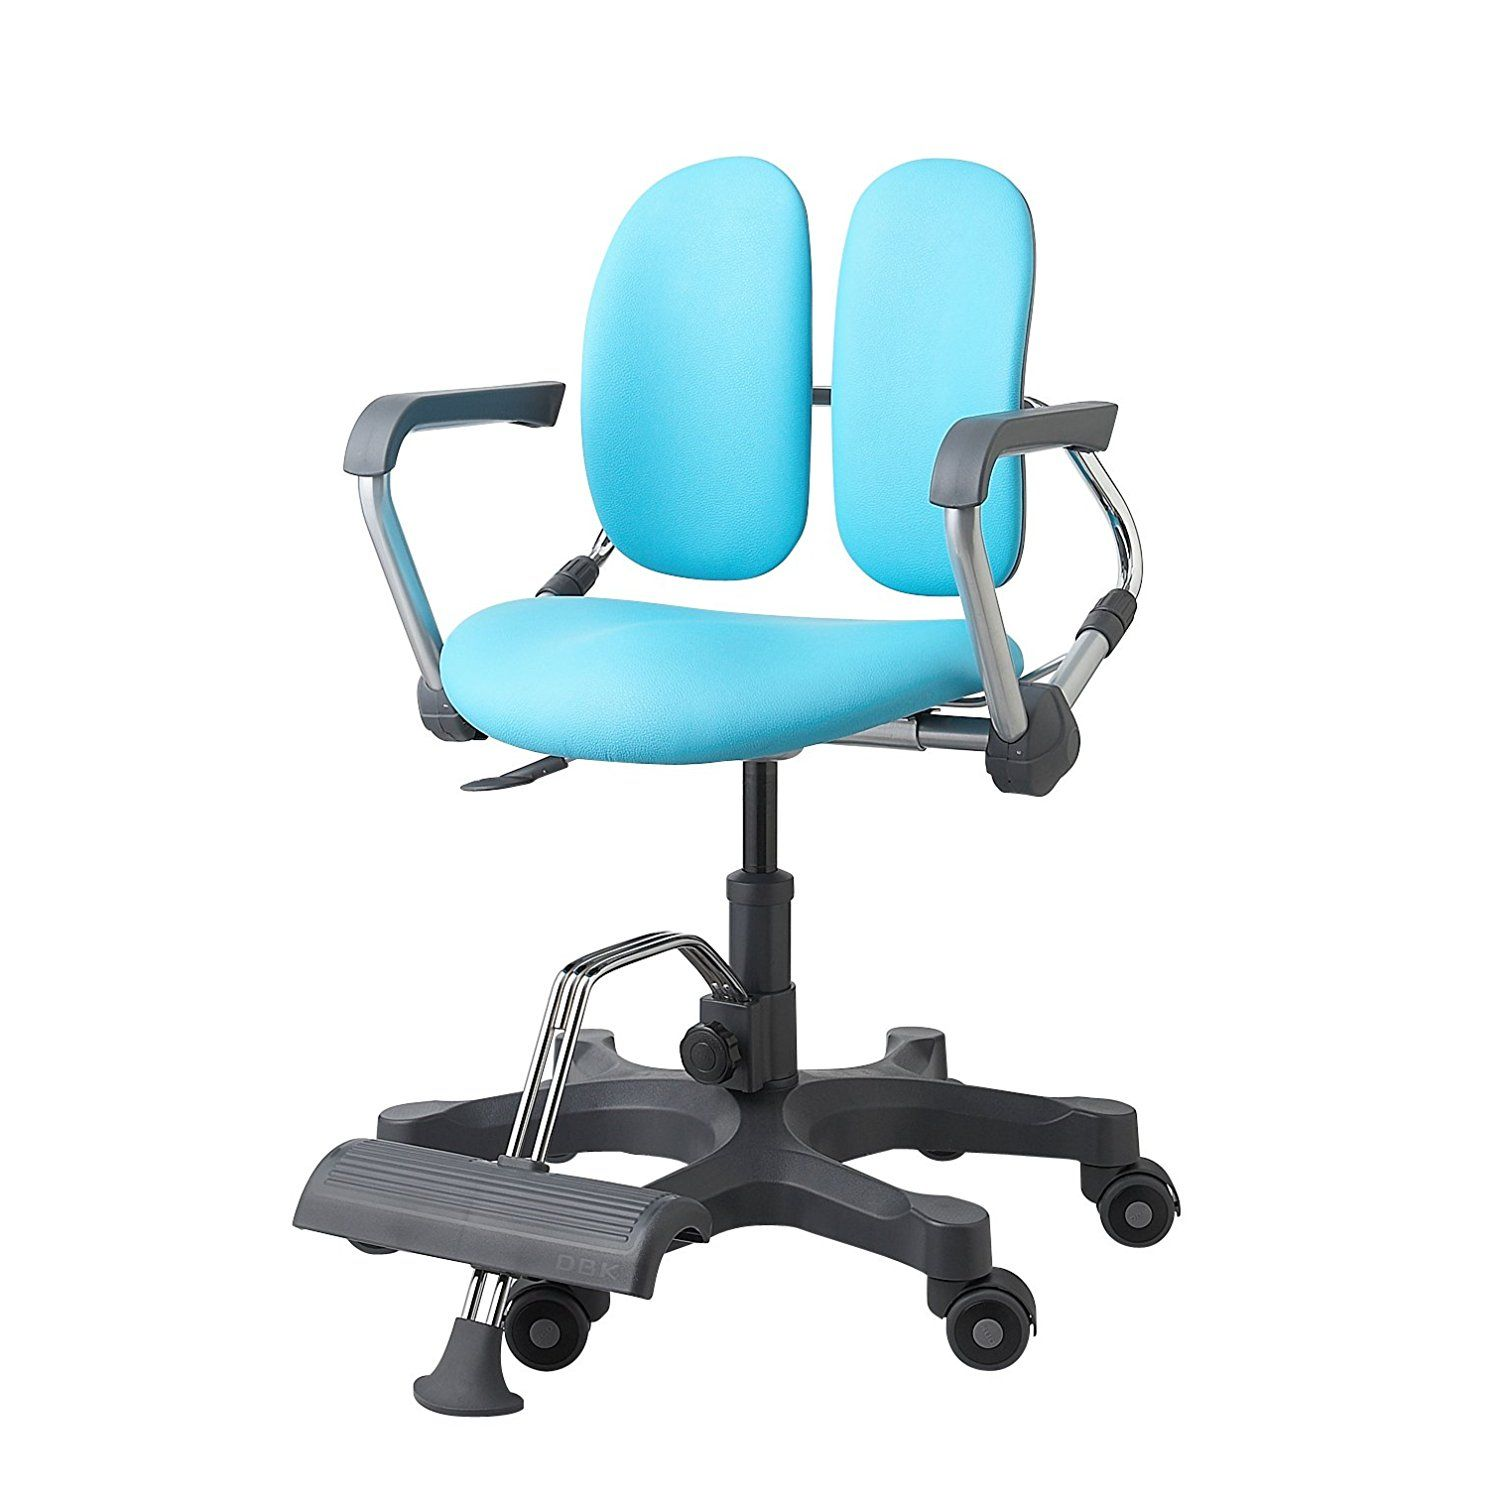 DUOREST Kids Ergonomic Student Desk Chair The Assistive